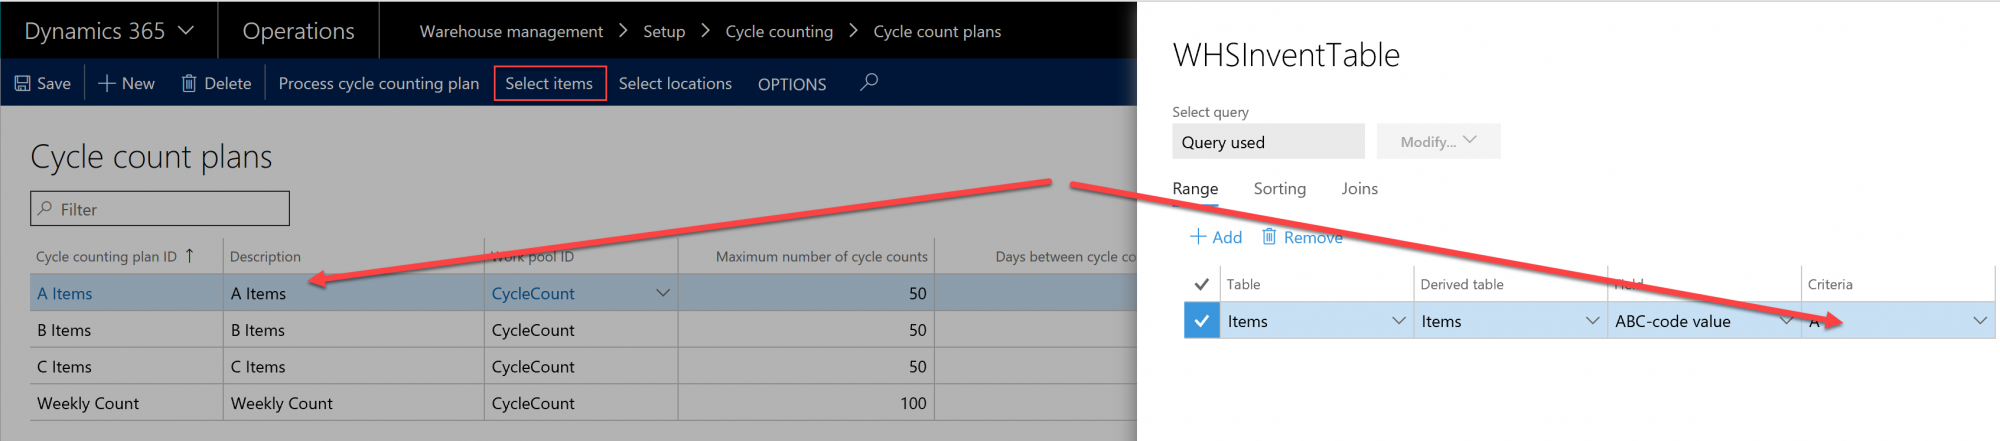 D365 Cycle Count Plans Screenshot 2